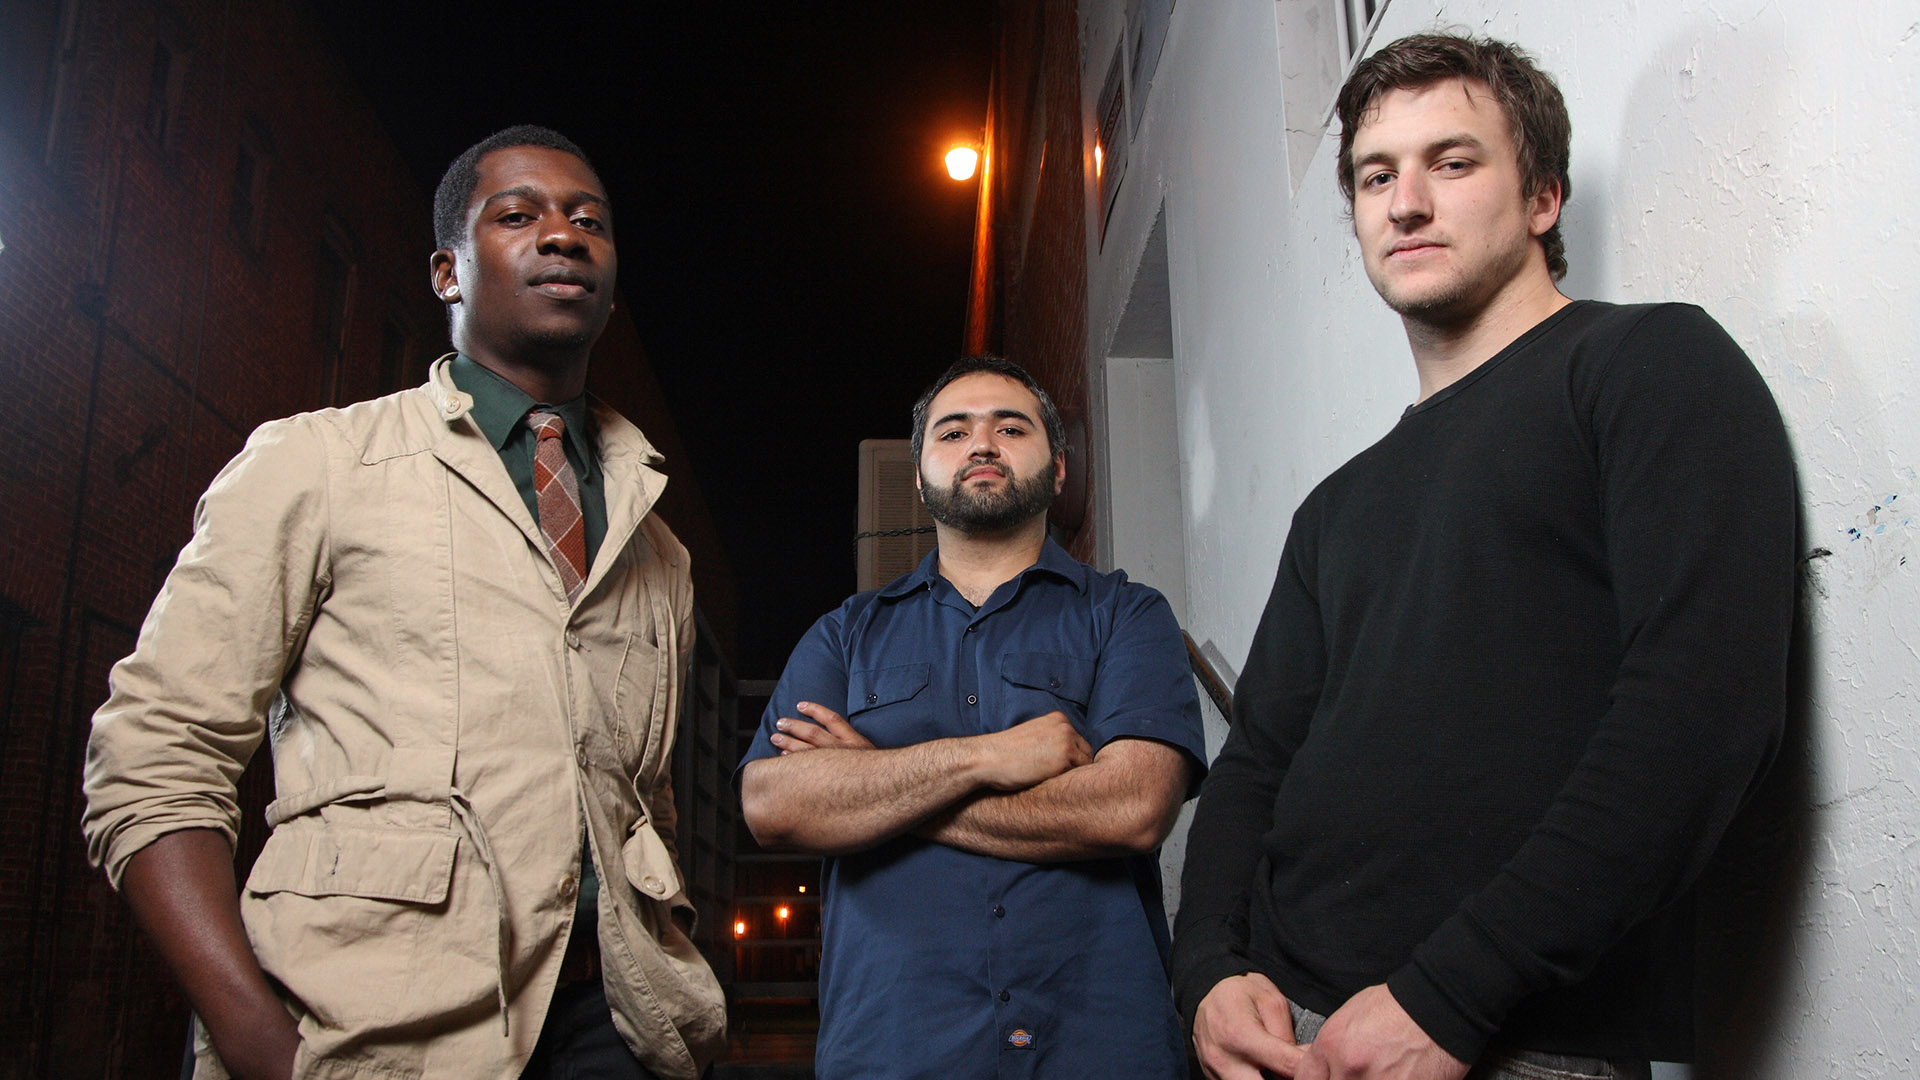 Animals As Leaders Backgrounds, Compatible - PC, Mobile, Gadgets  1920x1080 px